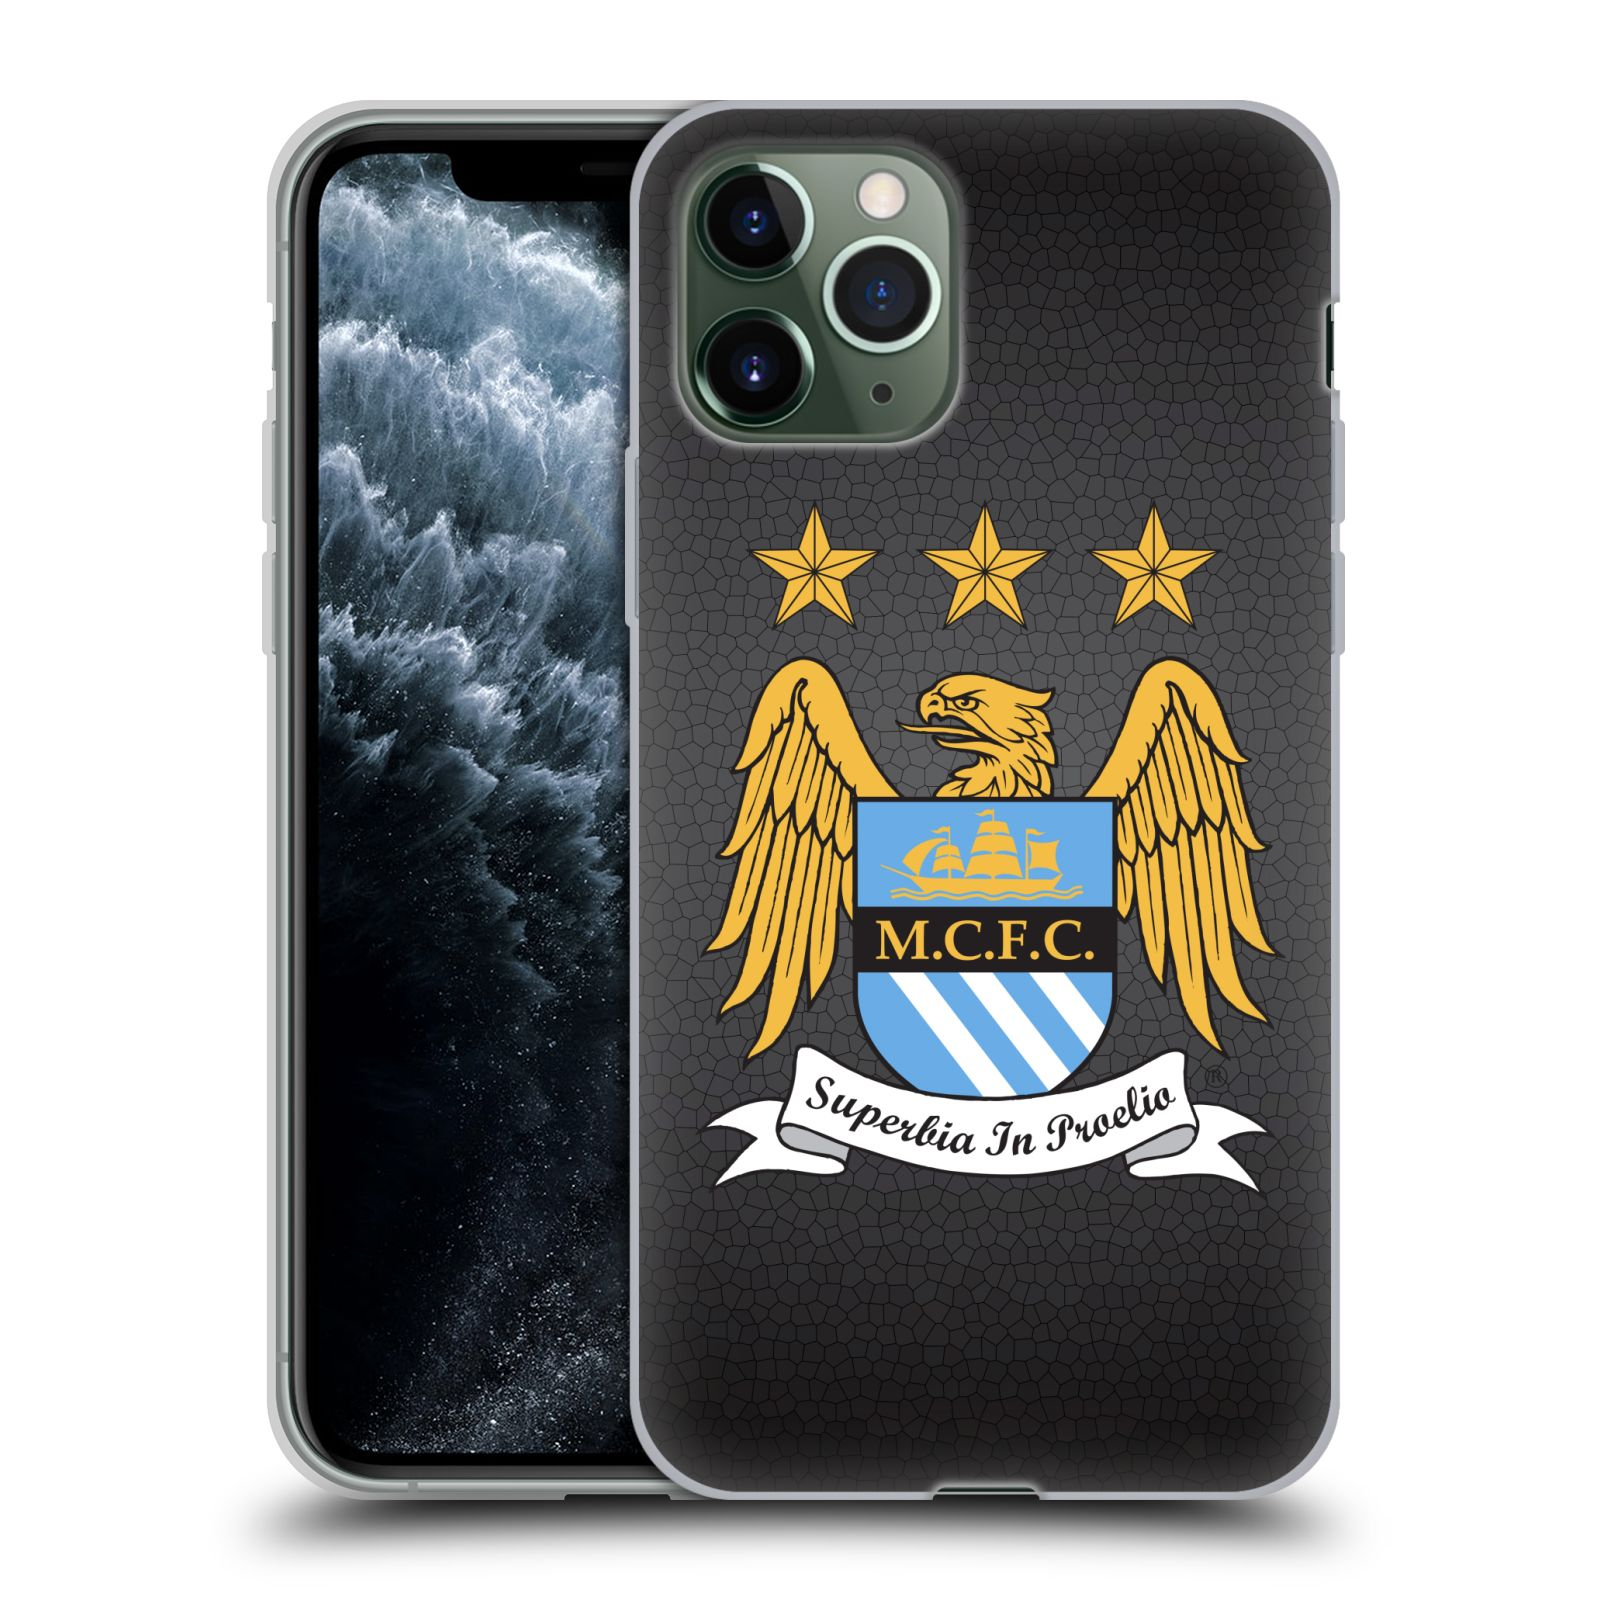 iphone 6s gumovy kryt | Silikonové pouzdro na mobil Apple iPhone 11 Pro - Head Case - Manchester City FC - Superbia In Proelio